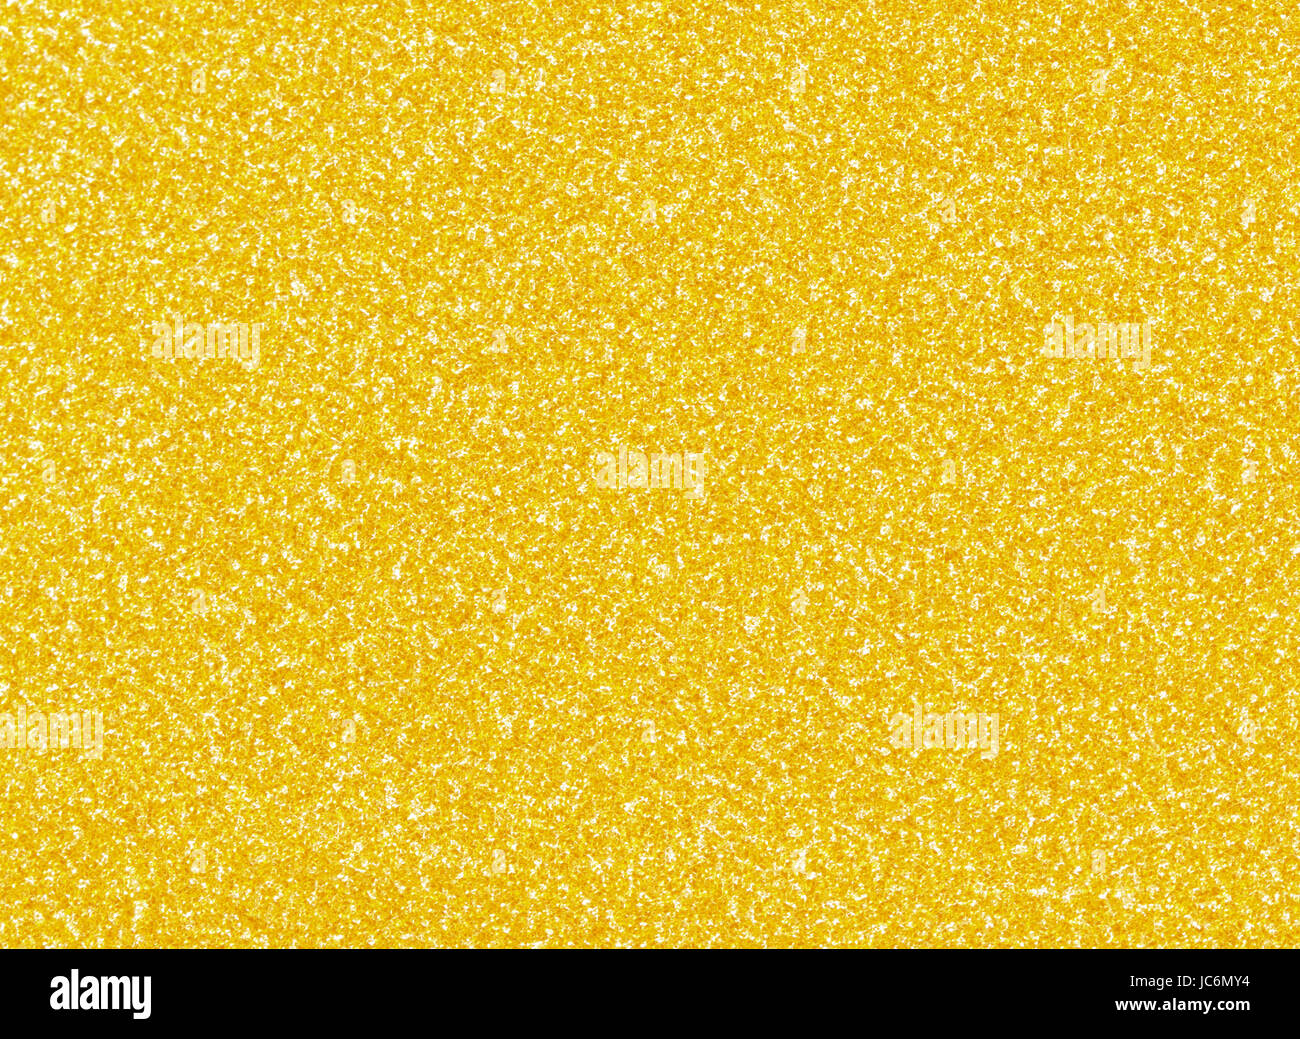 gold glitter texture christmas abstract background - Stock Image